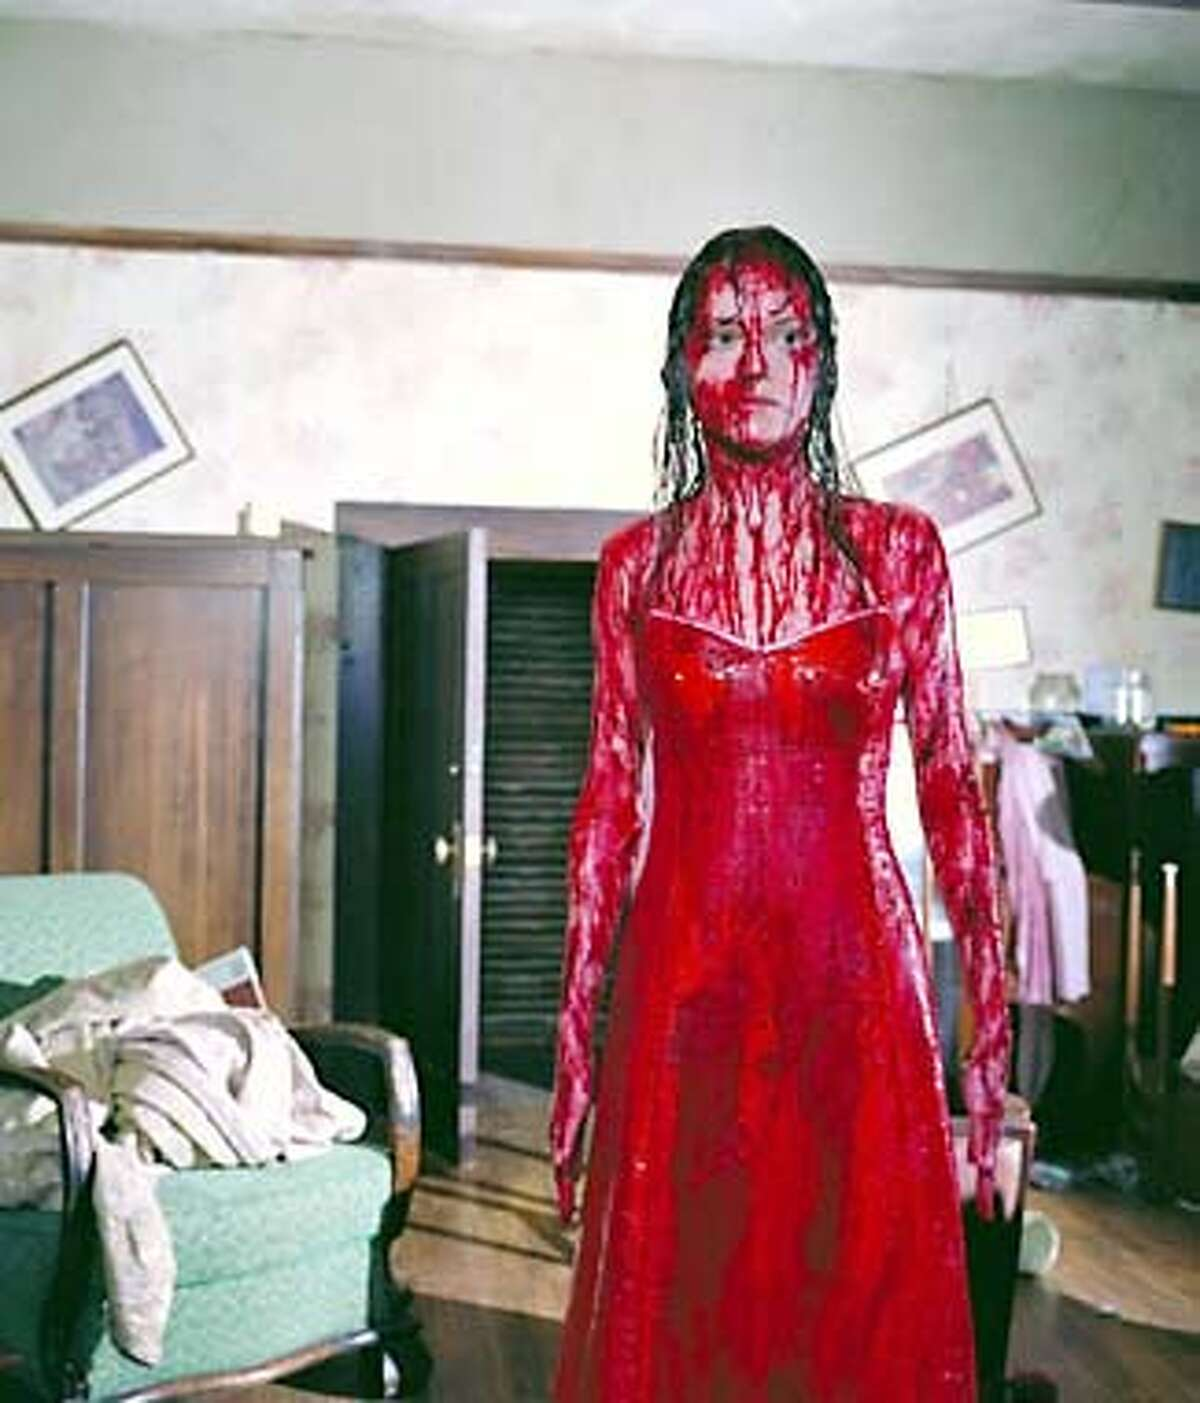 CARRIE -- NBC Movie -- Pictured: Angela Bettis as Carrie White -- NBC Photo by: Paul Michaud Airdate: Monday, November 4 on NBC (9-11p.m. ET) Size: 686920 (bytes) Posted: 10/22/02